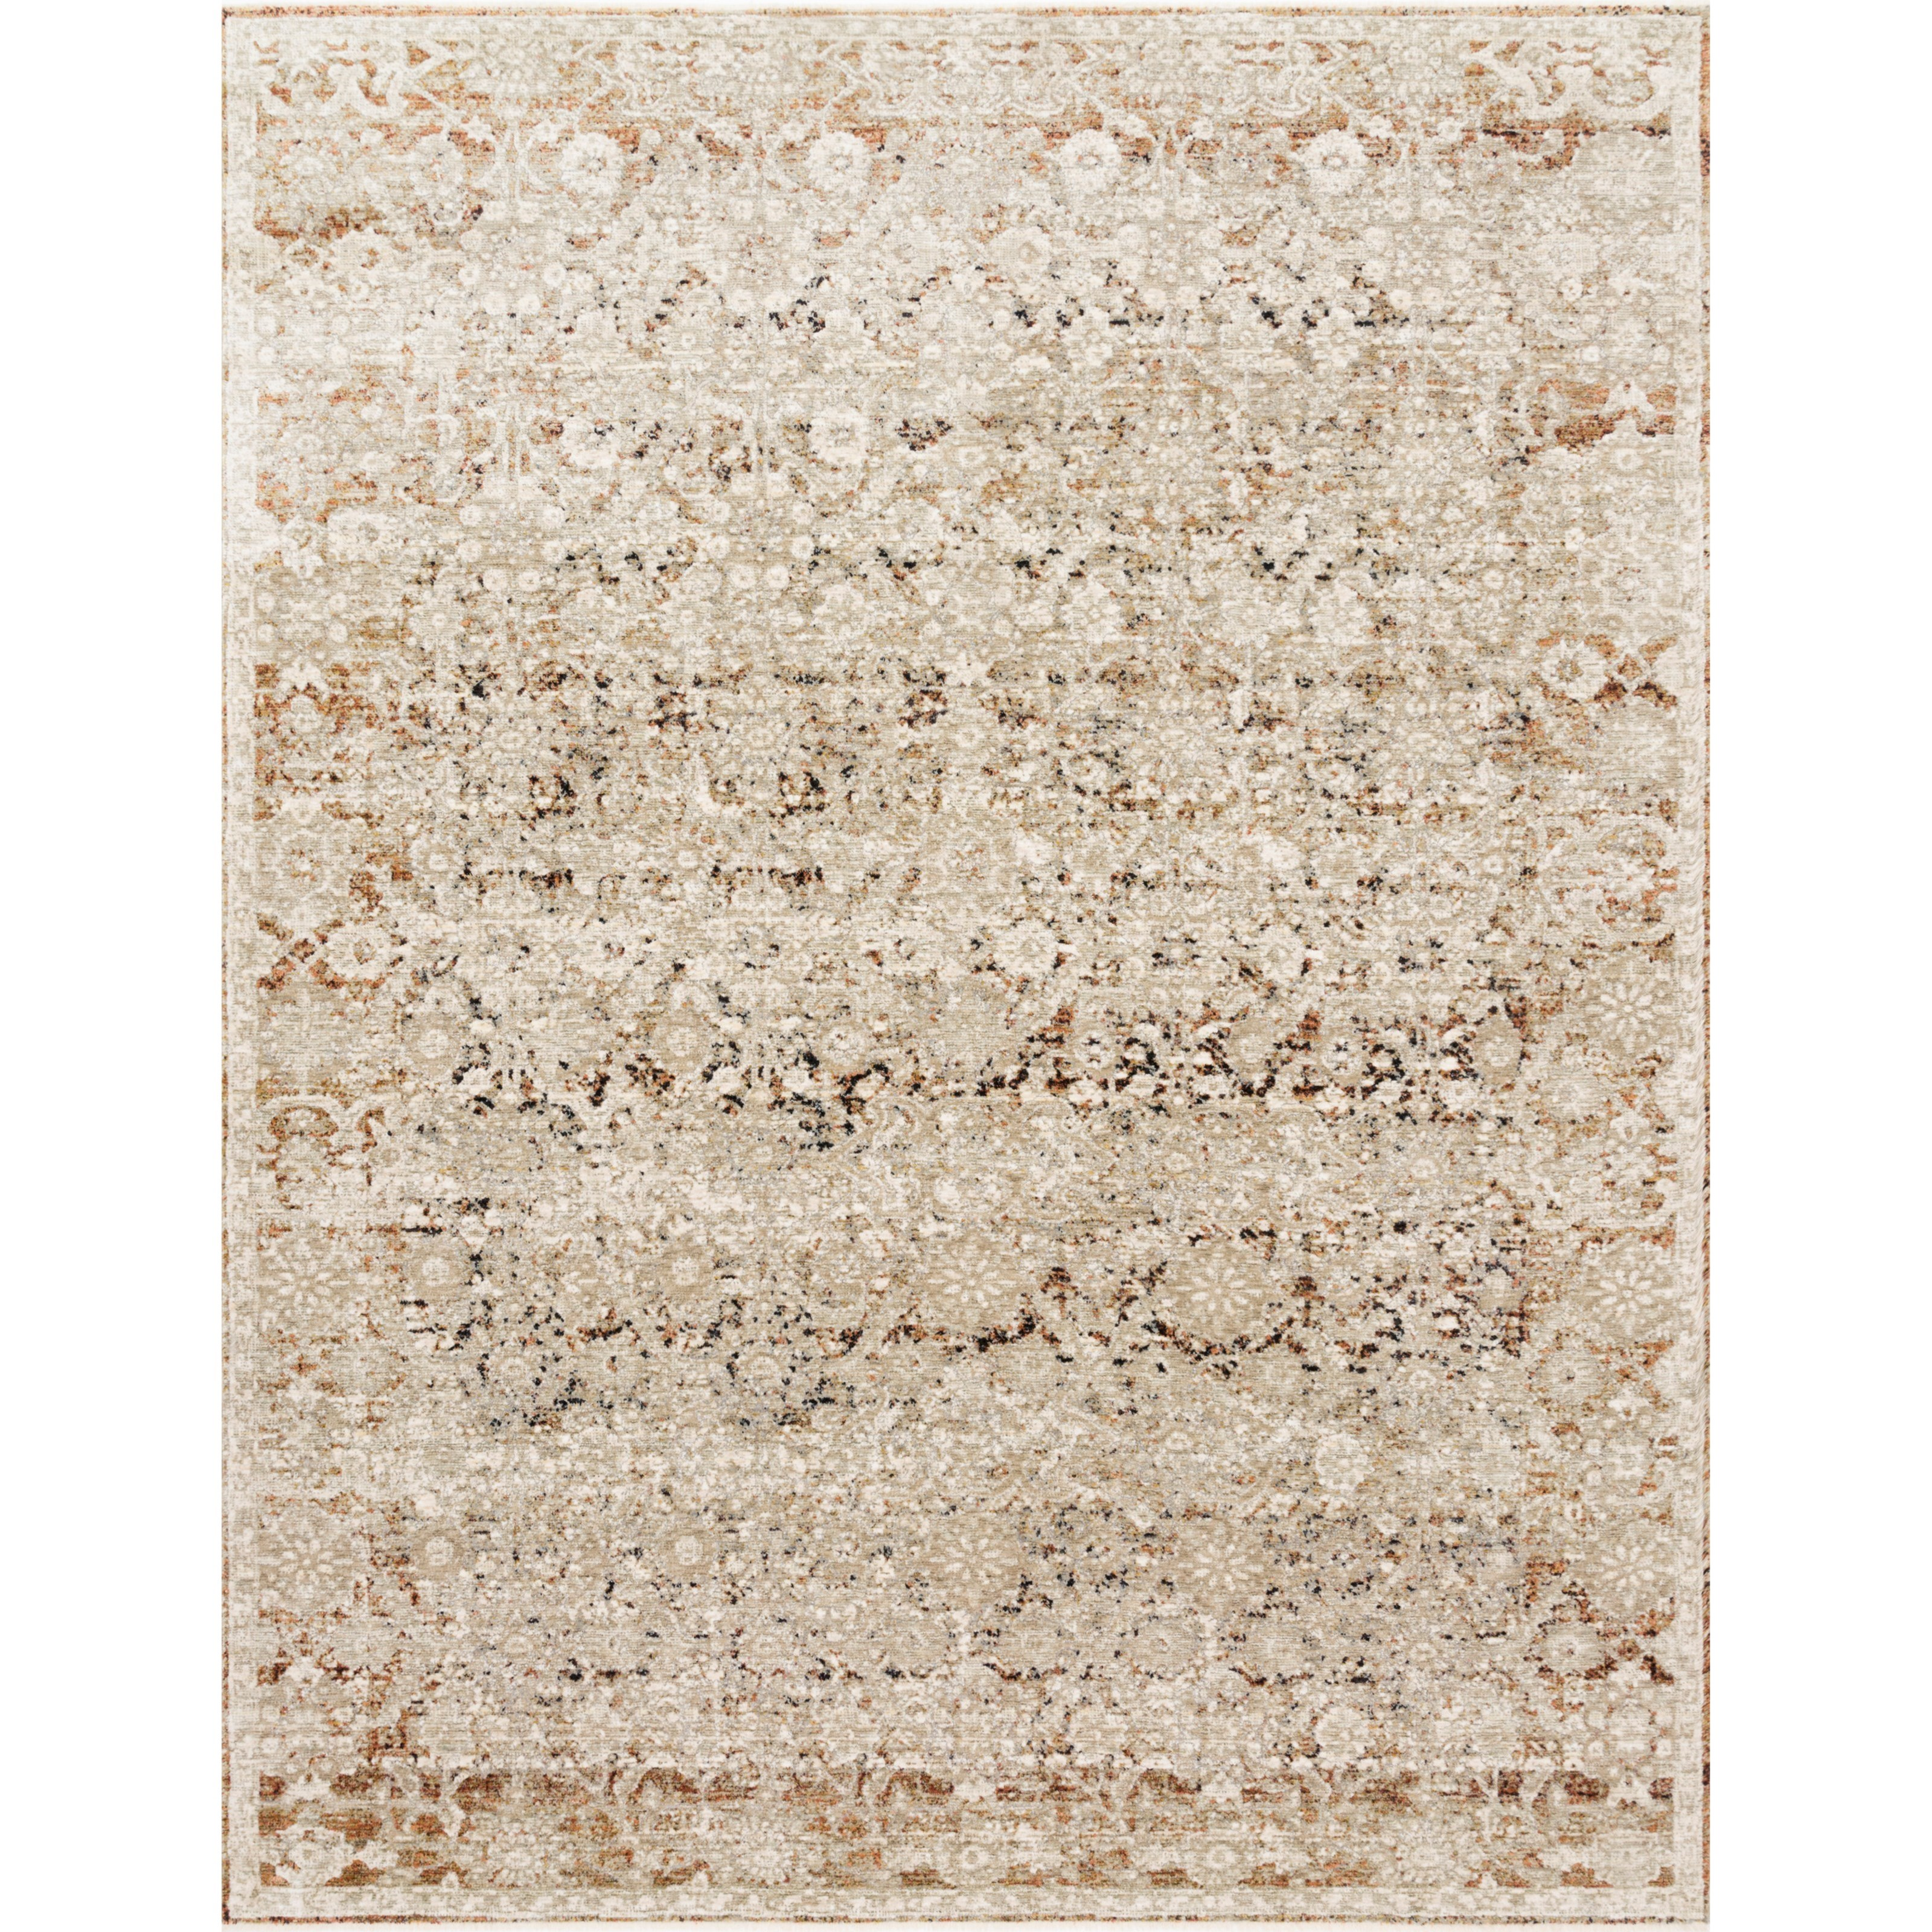 """Theia 7'10"""" x 7'10"""" Round Natural / Rust Rug by Loloi Rugs at Virginia Furniture Market"""